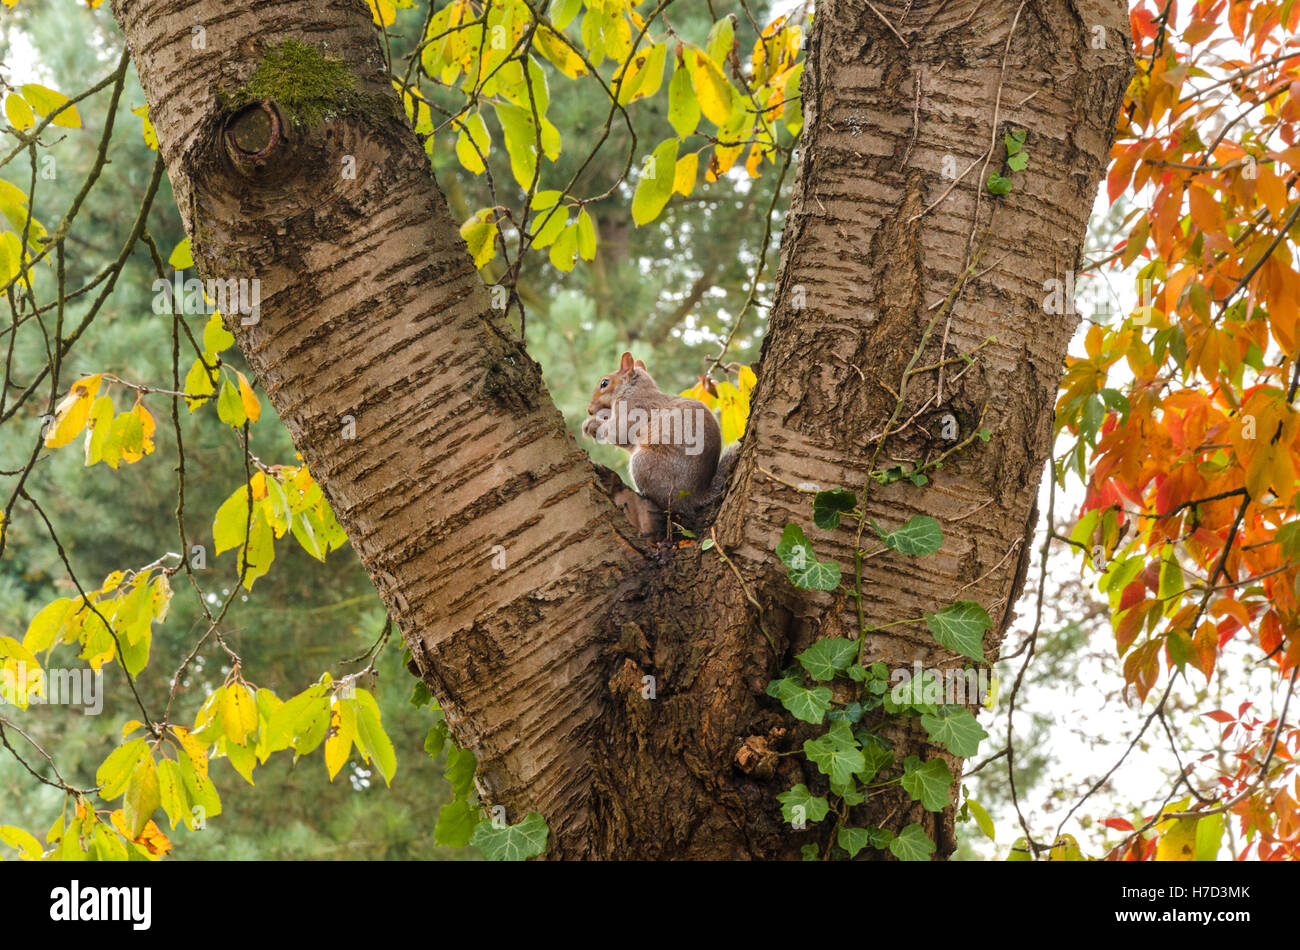 a-grey-squirrel-sits-in-the-fork-of-a-tree-on-an-autumn-day-H7D3MK.jpg